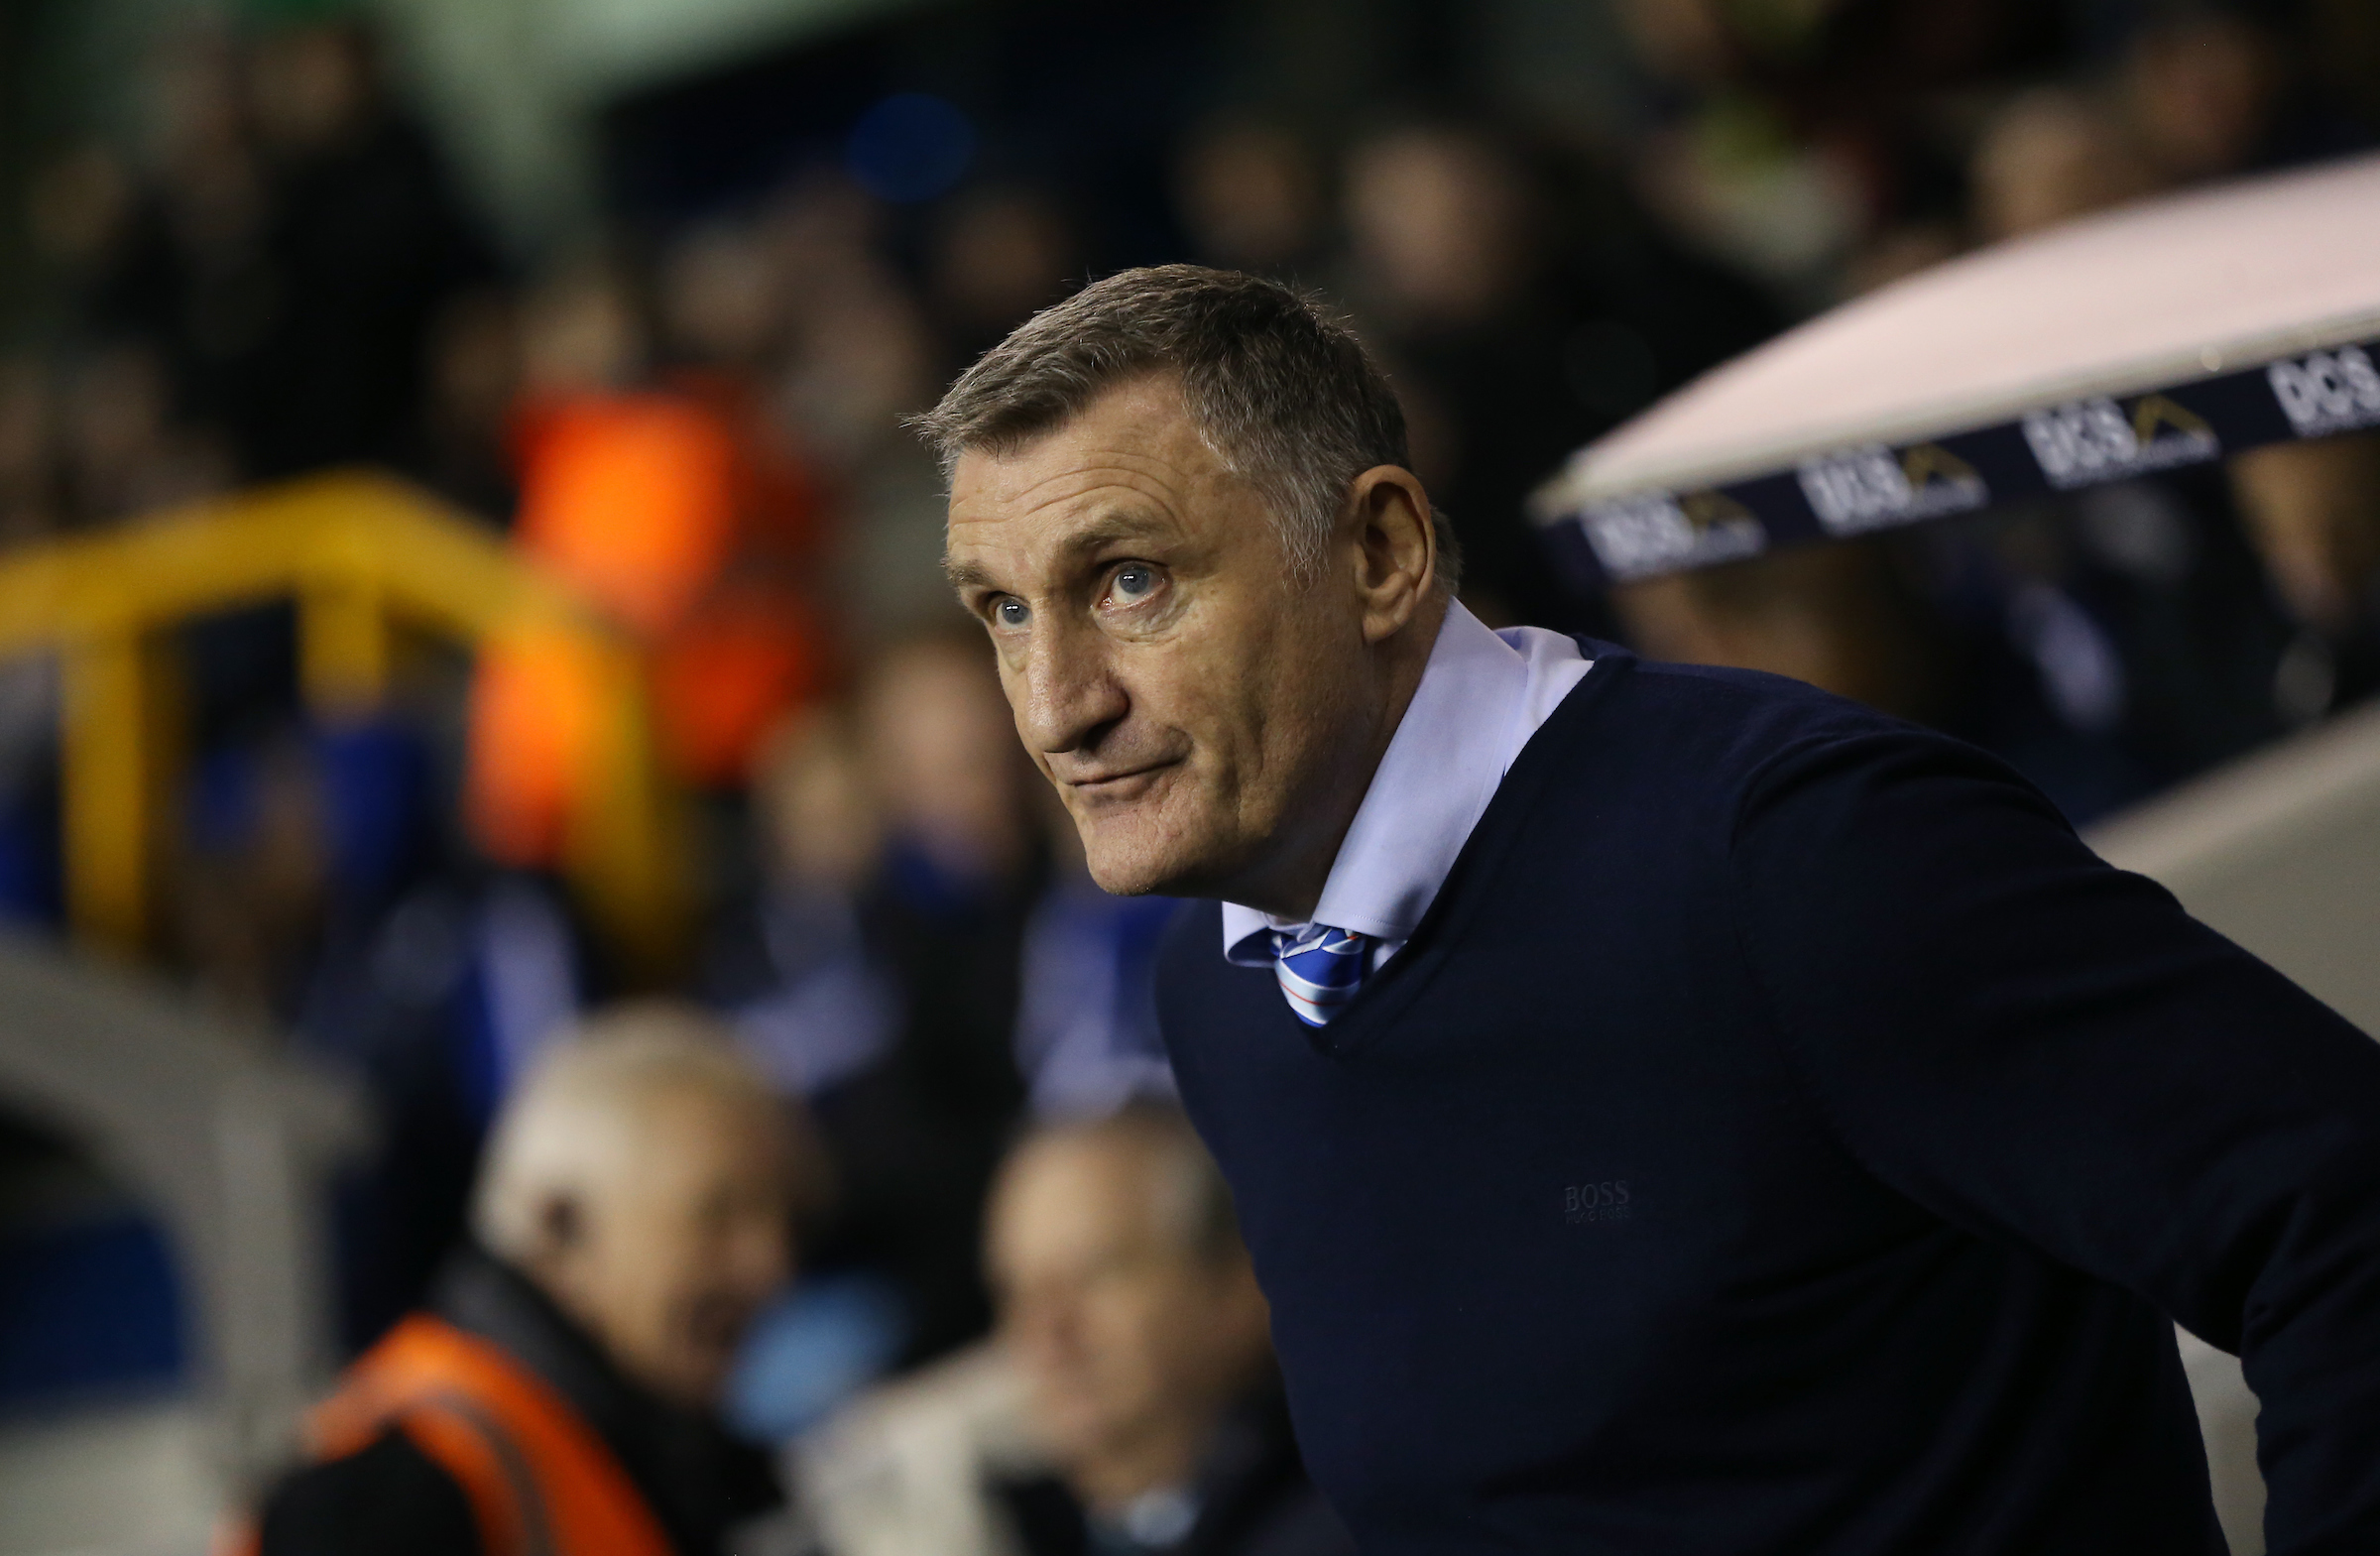 Tony Mowbray's side face Bristol City this afternoon